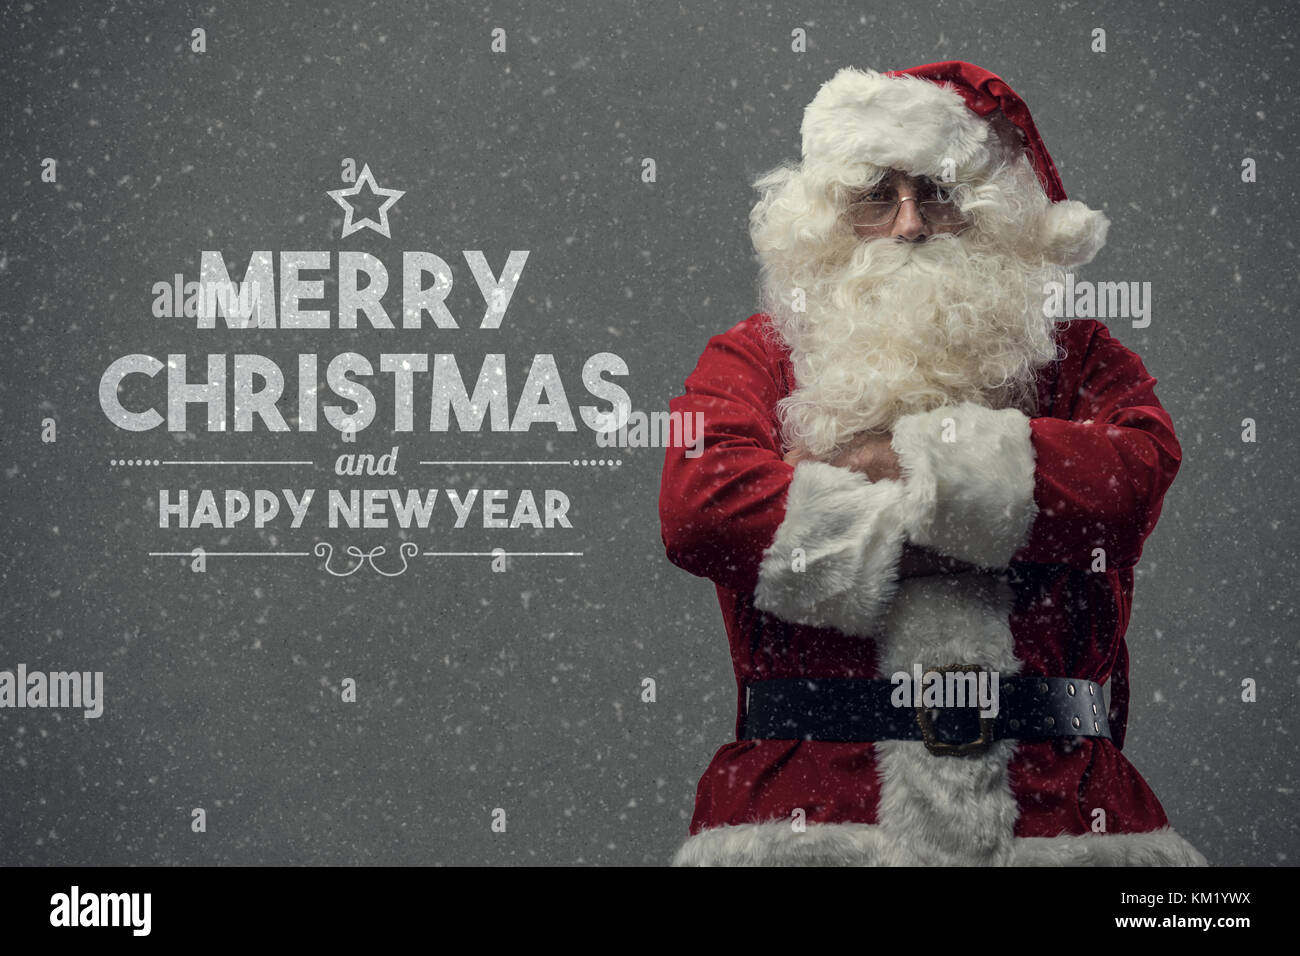 Confident Santa Claus posing with arms crossed and Christmas wishes, snow falling on the background - Stock Image